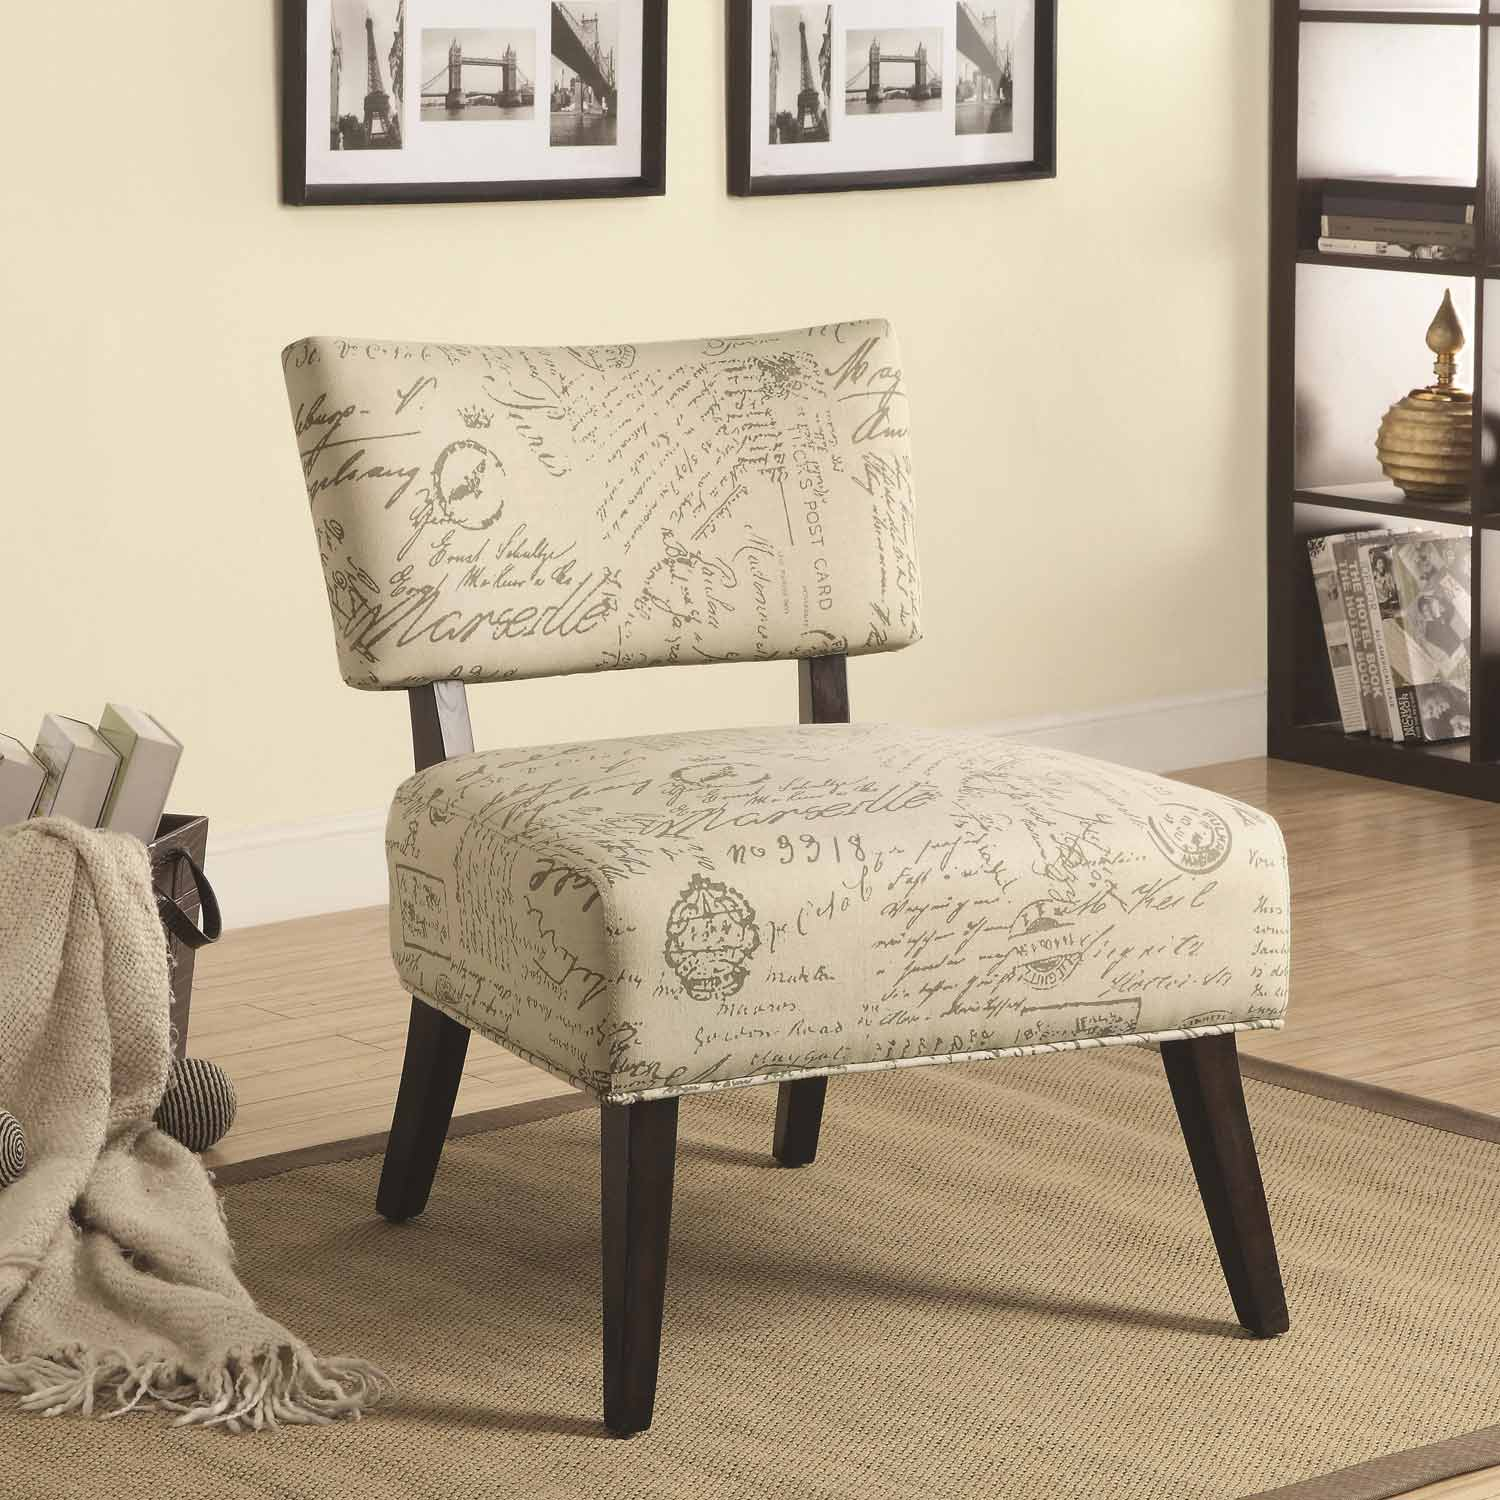 Coaster 902114 Accent Chair - Beige - Cappuccino